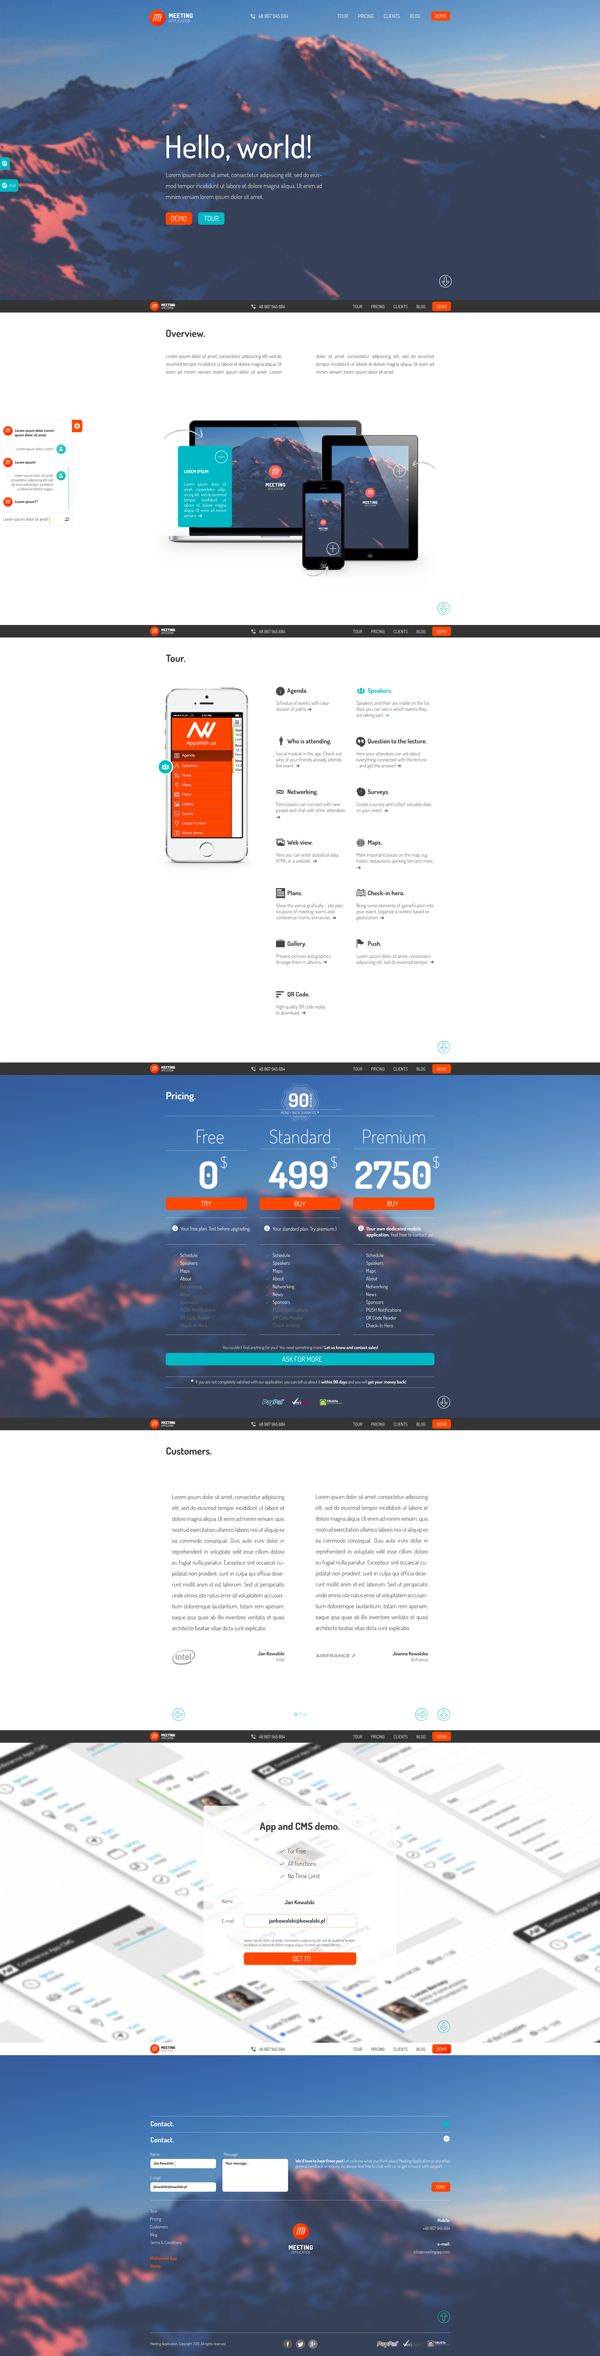 Meeting Application by Piotr Kozak, via Behance